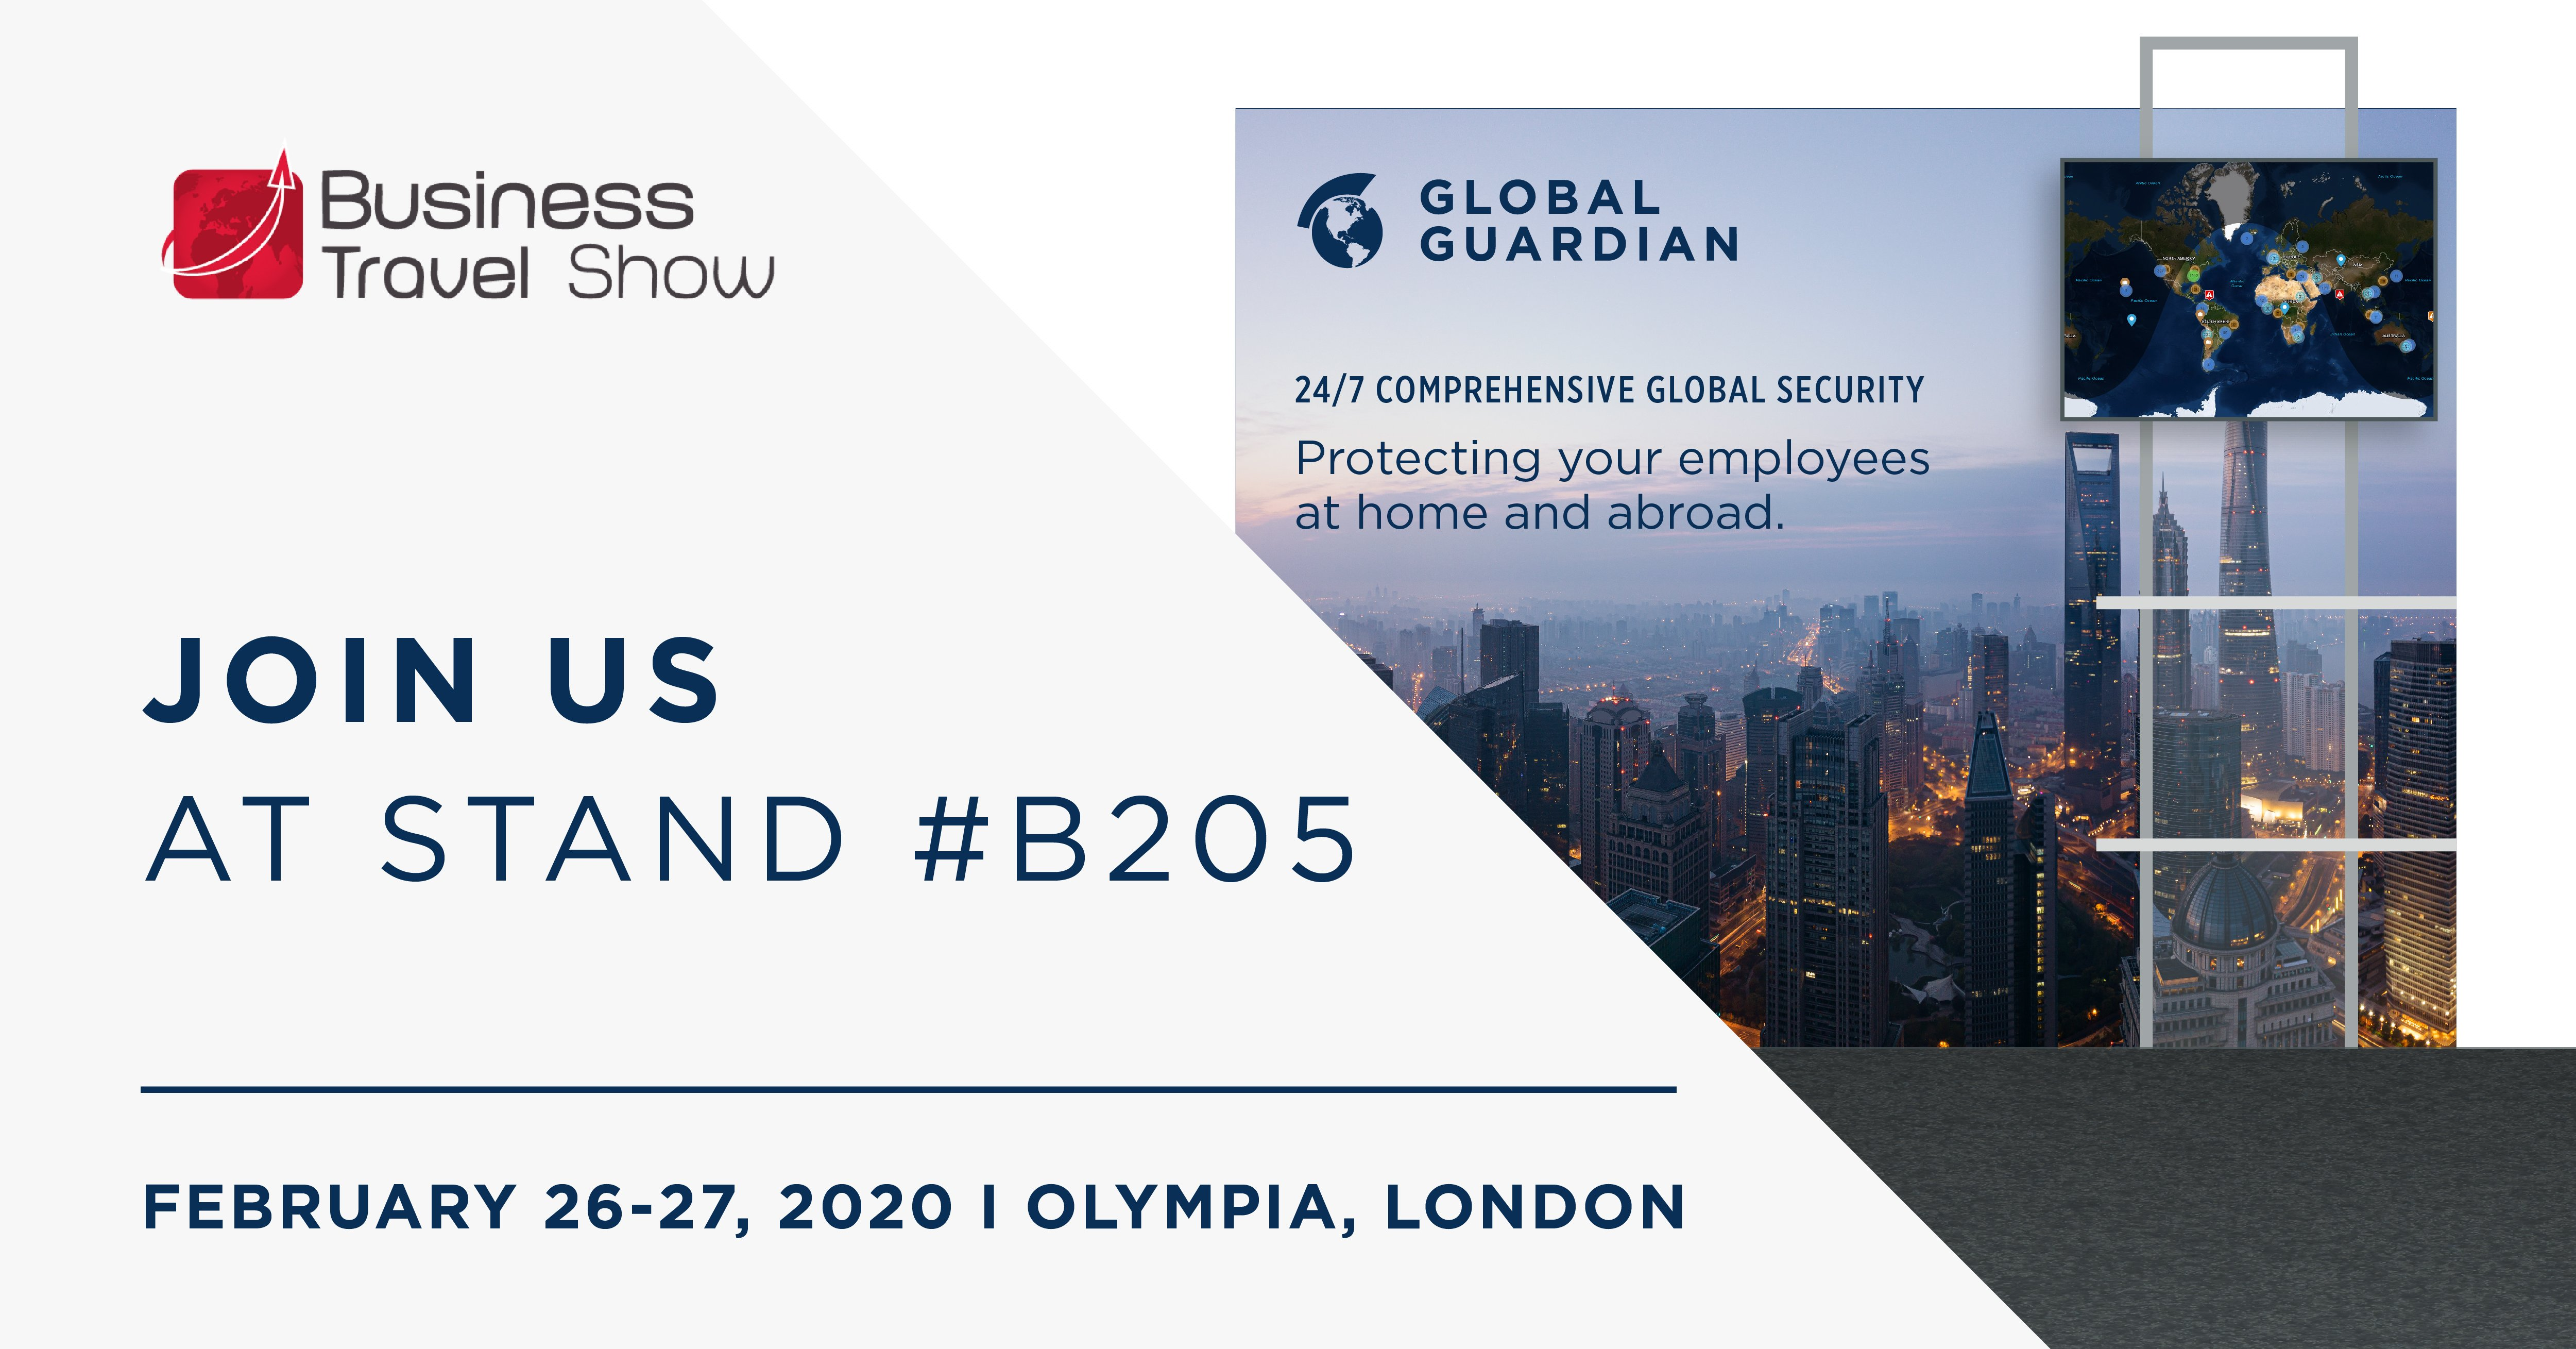 Join Global Guardian in London at the Business Travel Show